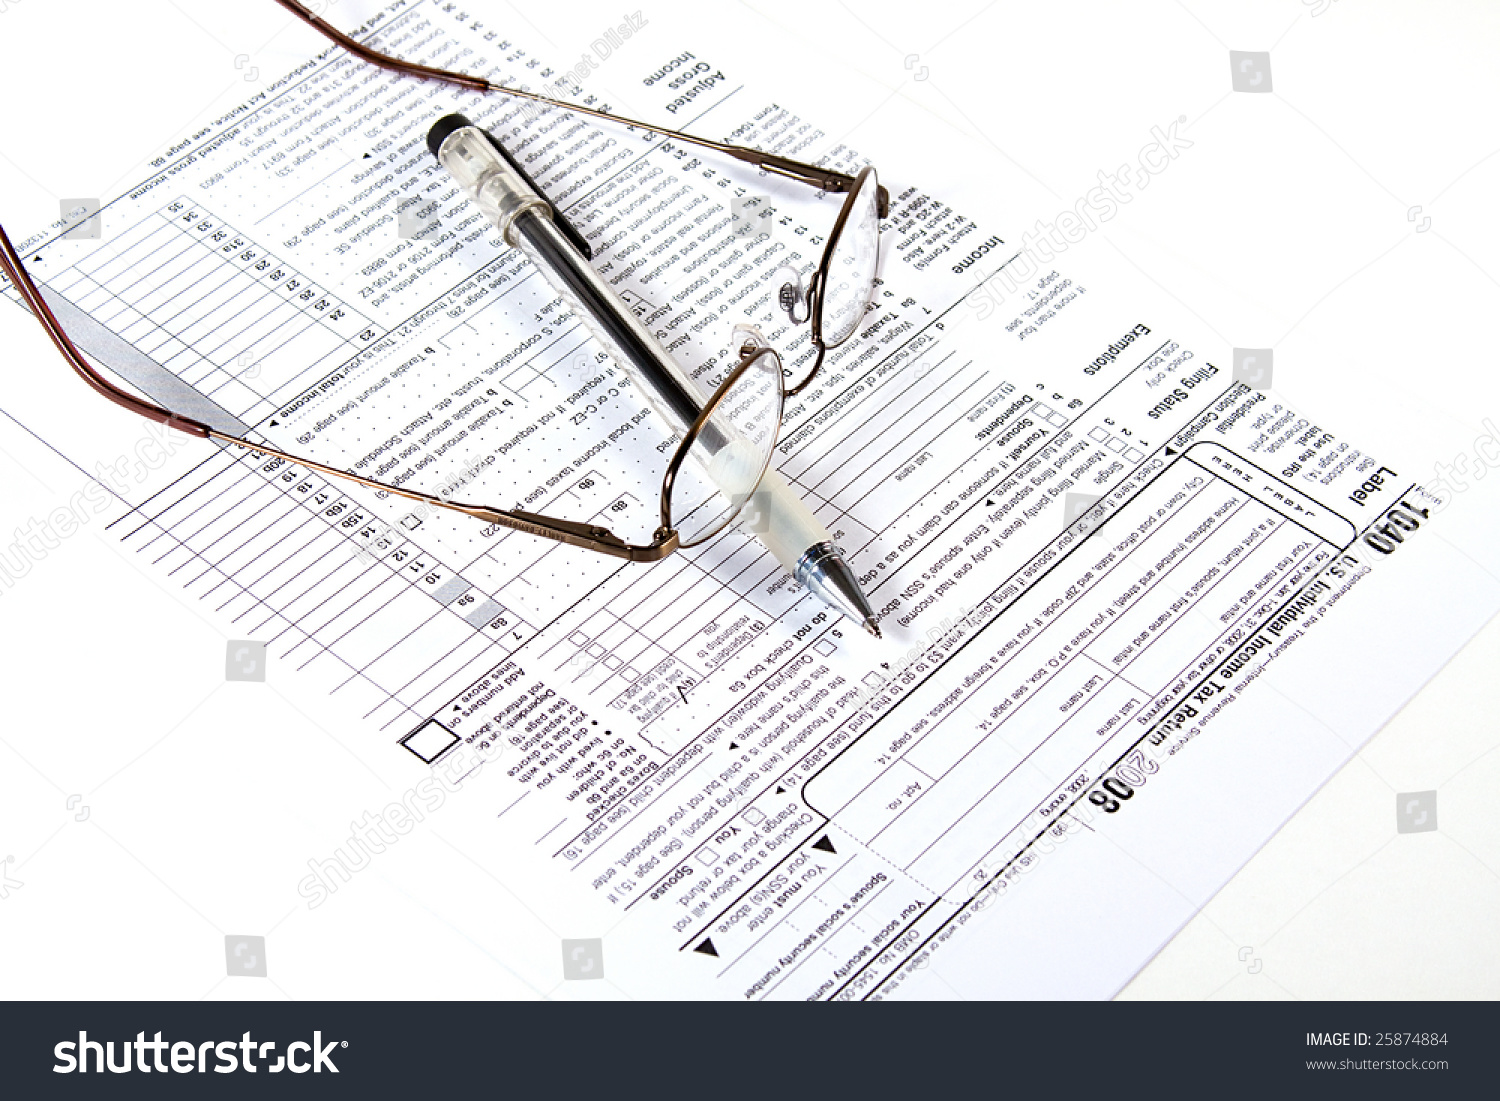 Preparing taxes form 1040 2008 stock photo 25874884 shutterstock preparing taxes form 1040 for 2008 falaconquin